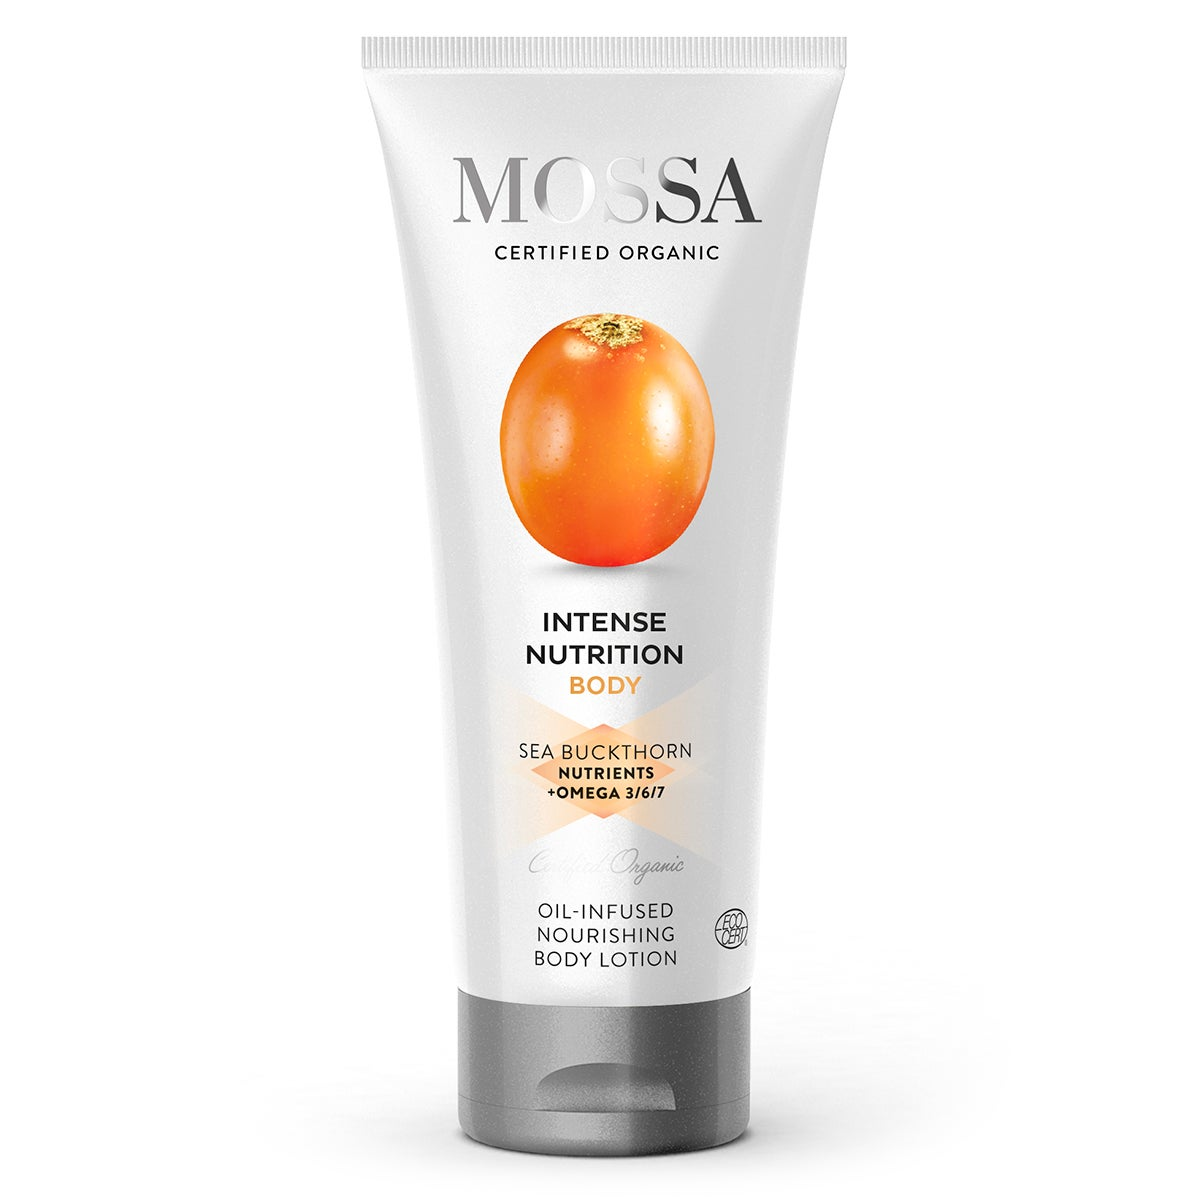 MOSSA Intense Nutrition Body Lotion